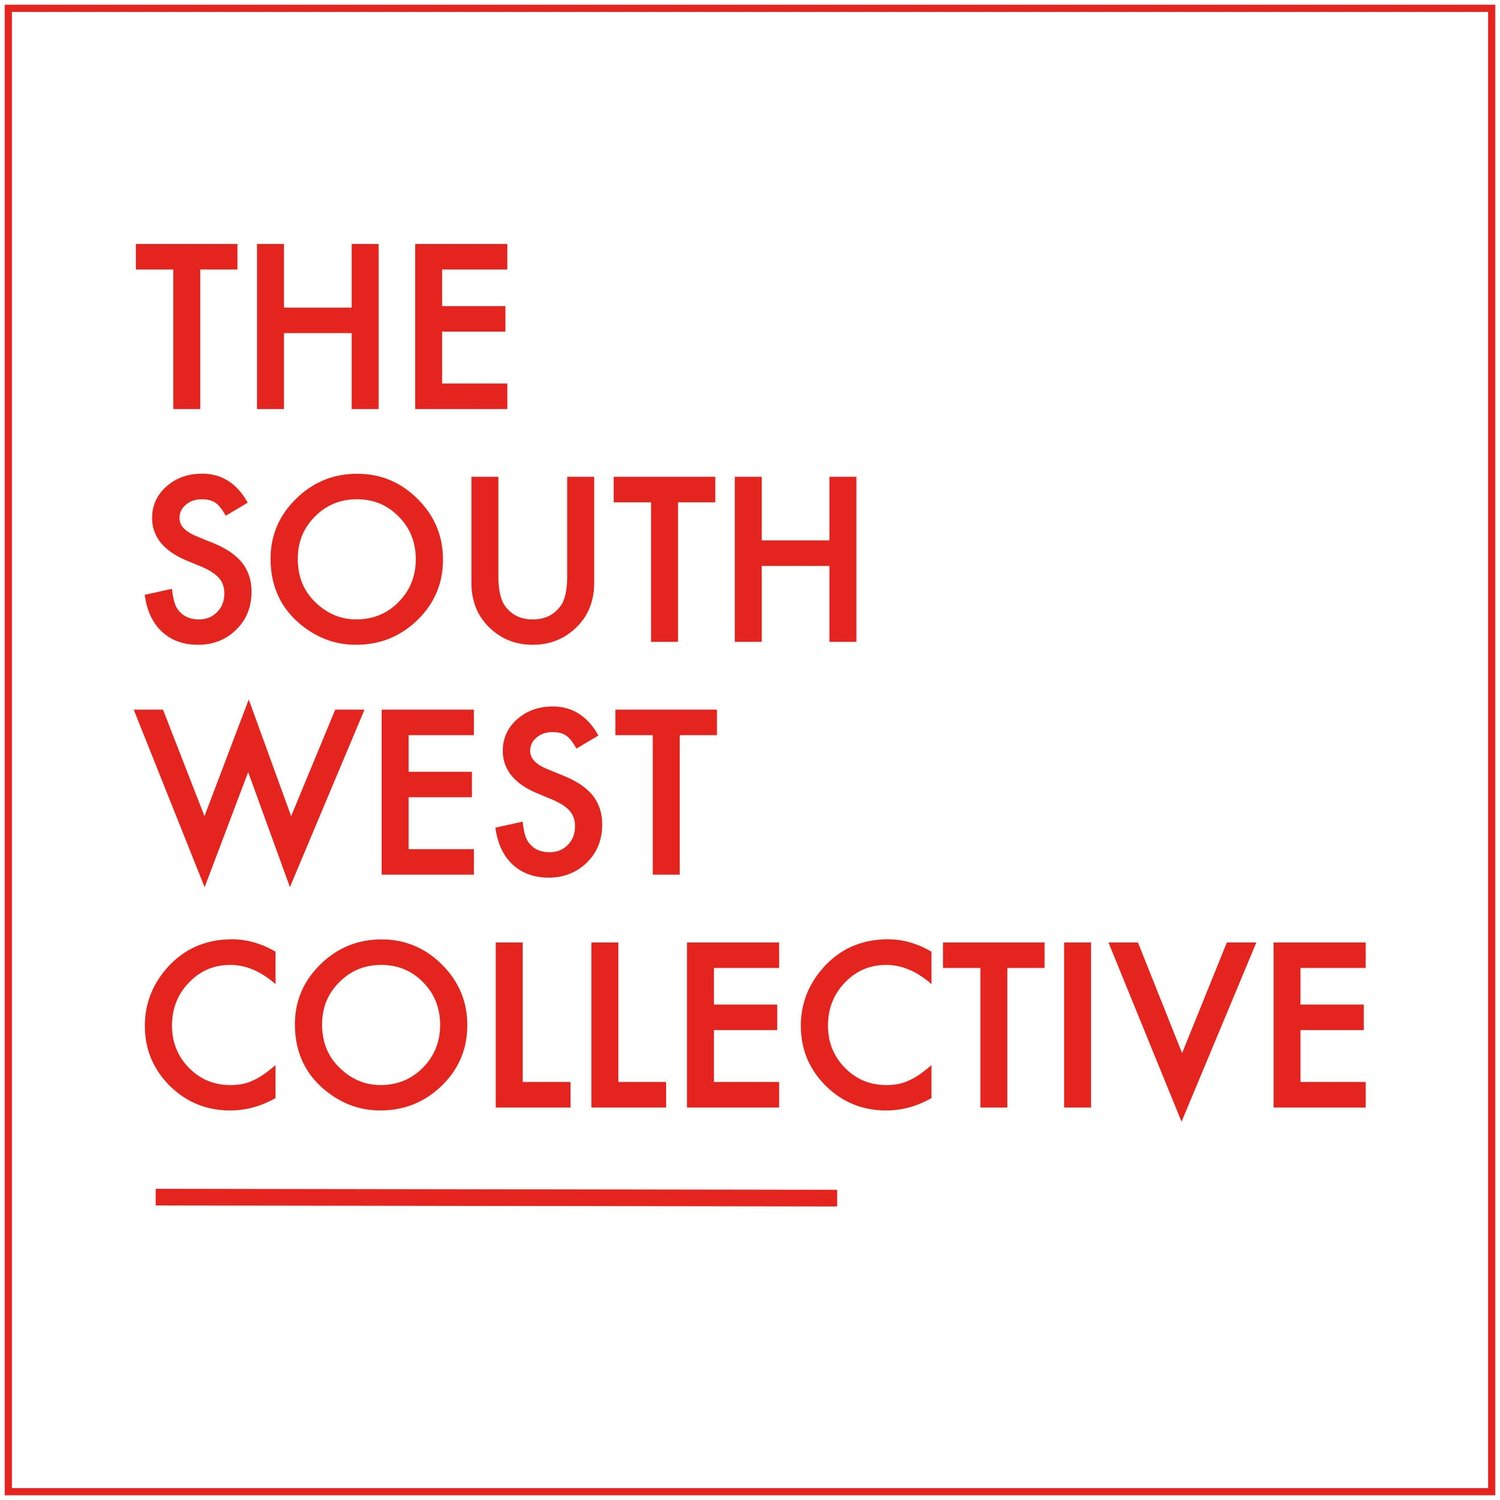 The South West Collective